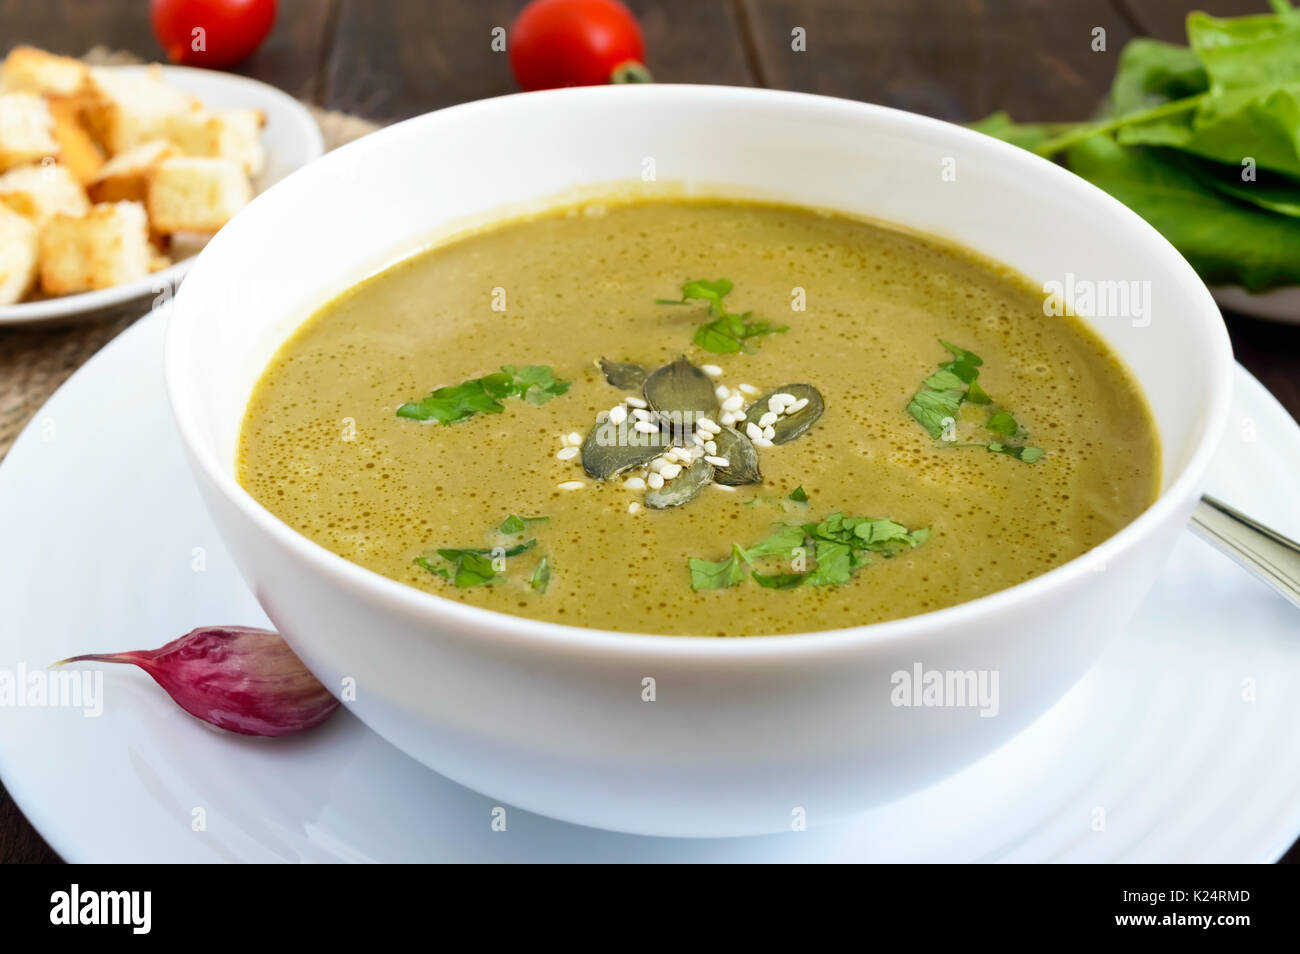 Vegetable cream soup with spinach and potatoes in a white bowl with garlic croutons on a dark wooden background. Dietary vegetarian menu. Proper nutri - Stock Image